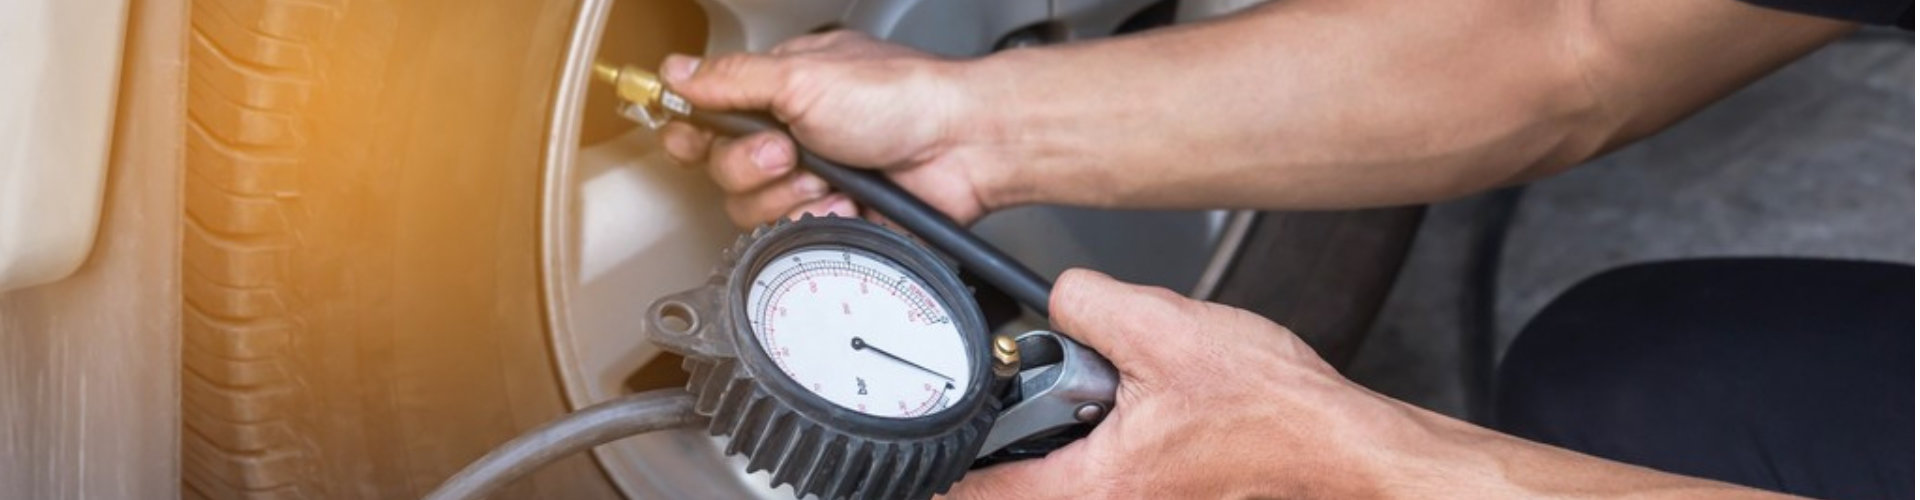 mechanic inflating tire and checking air pressure with gauge pressure in service station